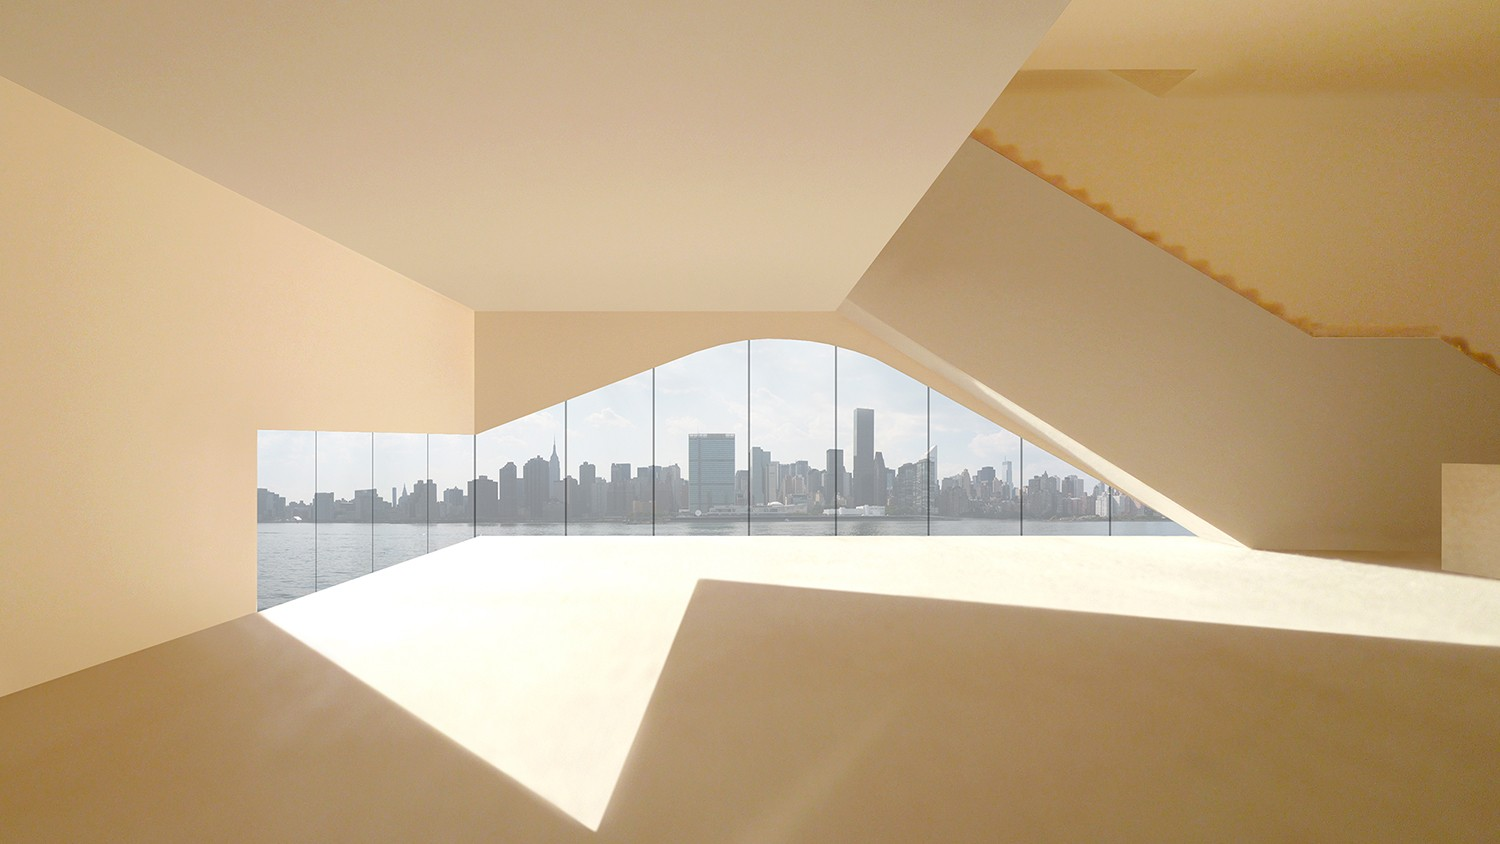 https://s3.us-east-2.amazonaws.com/steven-holl/uploads/projects/project-images/StevenHollArchitects_HPL_24_8_P1000346_WV.jpg